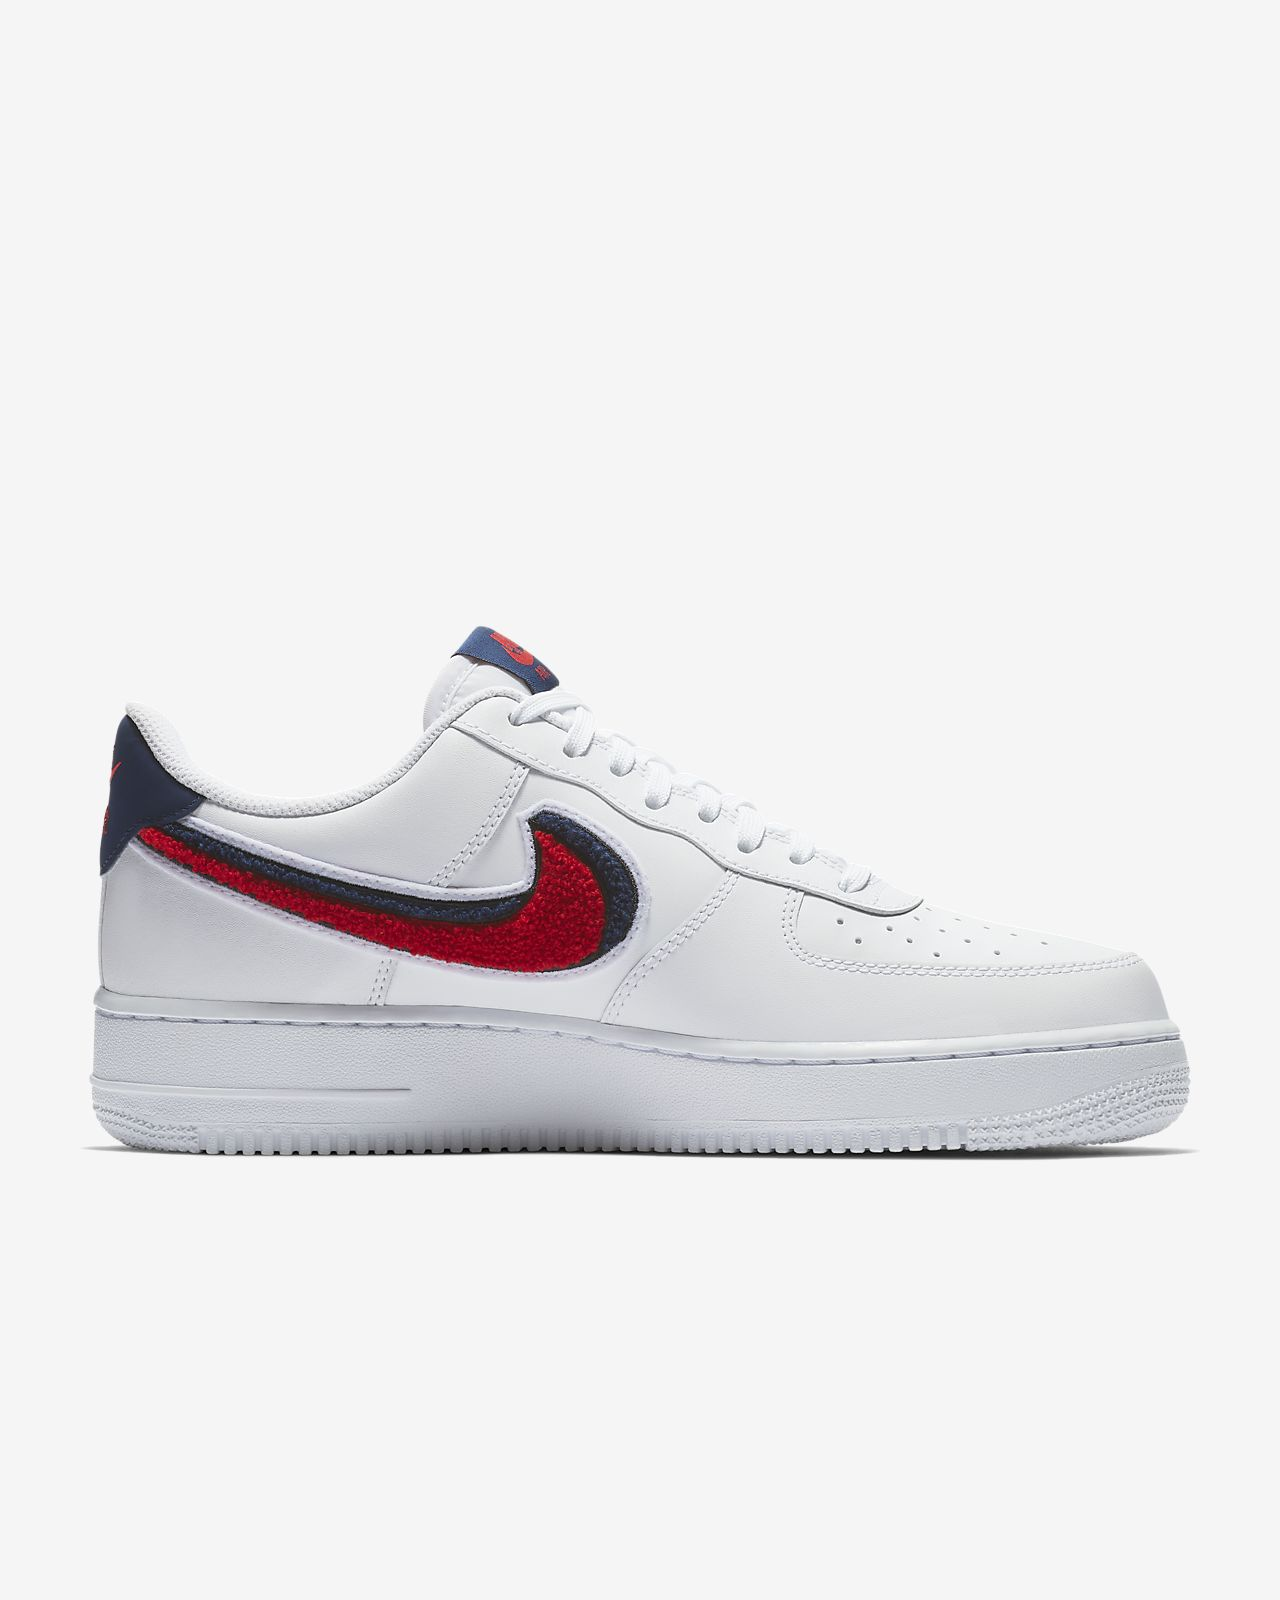 outlet store c5a8b 2a161 Nike Air Force 1 Low 07 LV8 Mens Shoe .